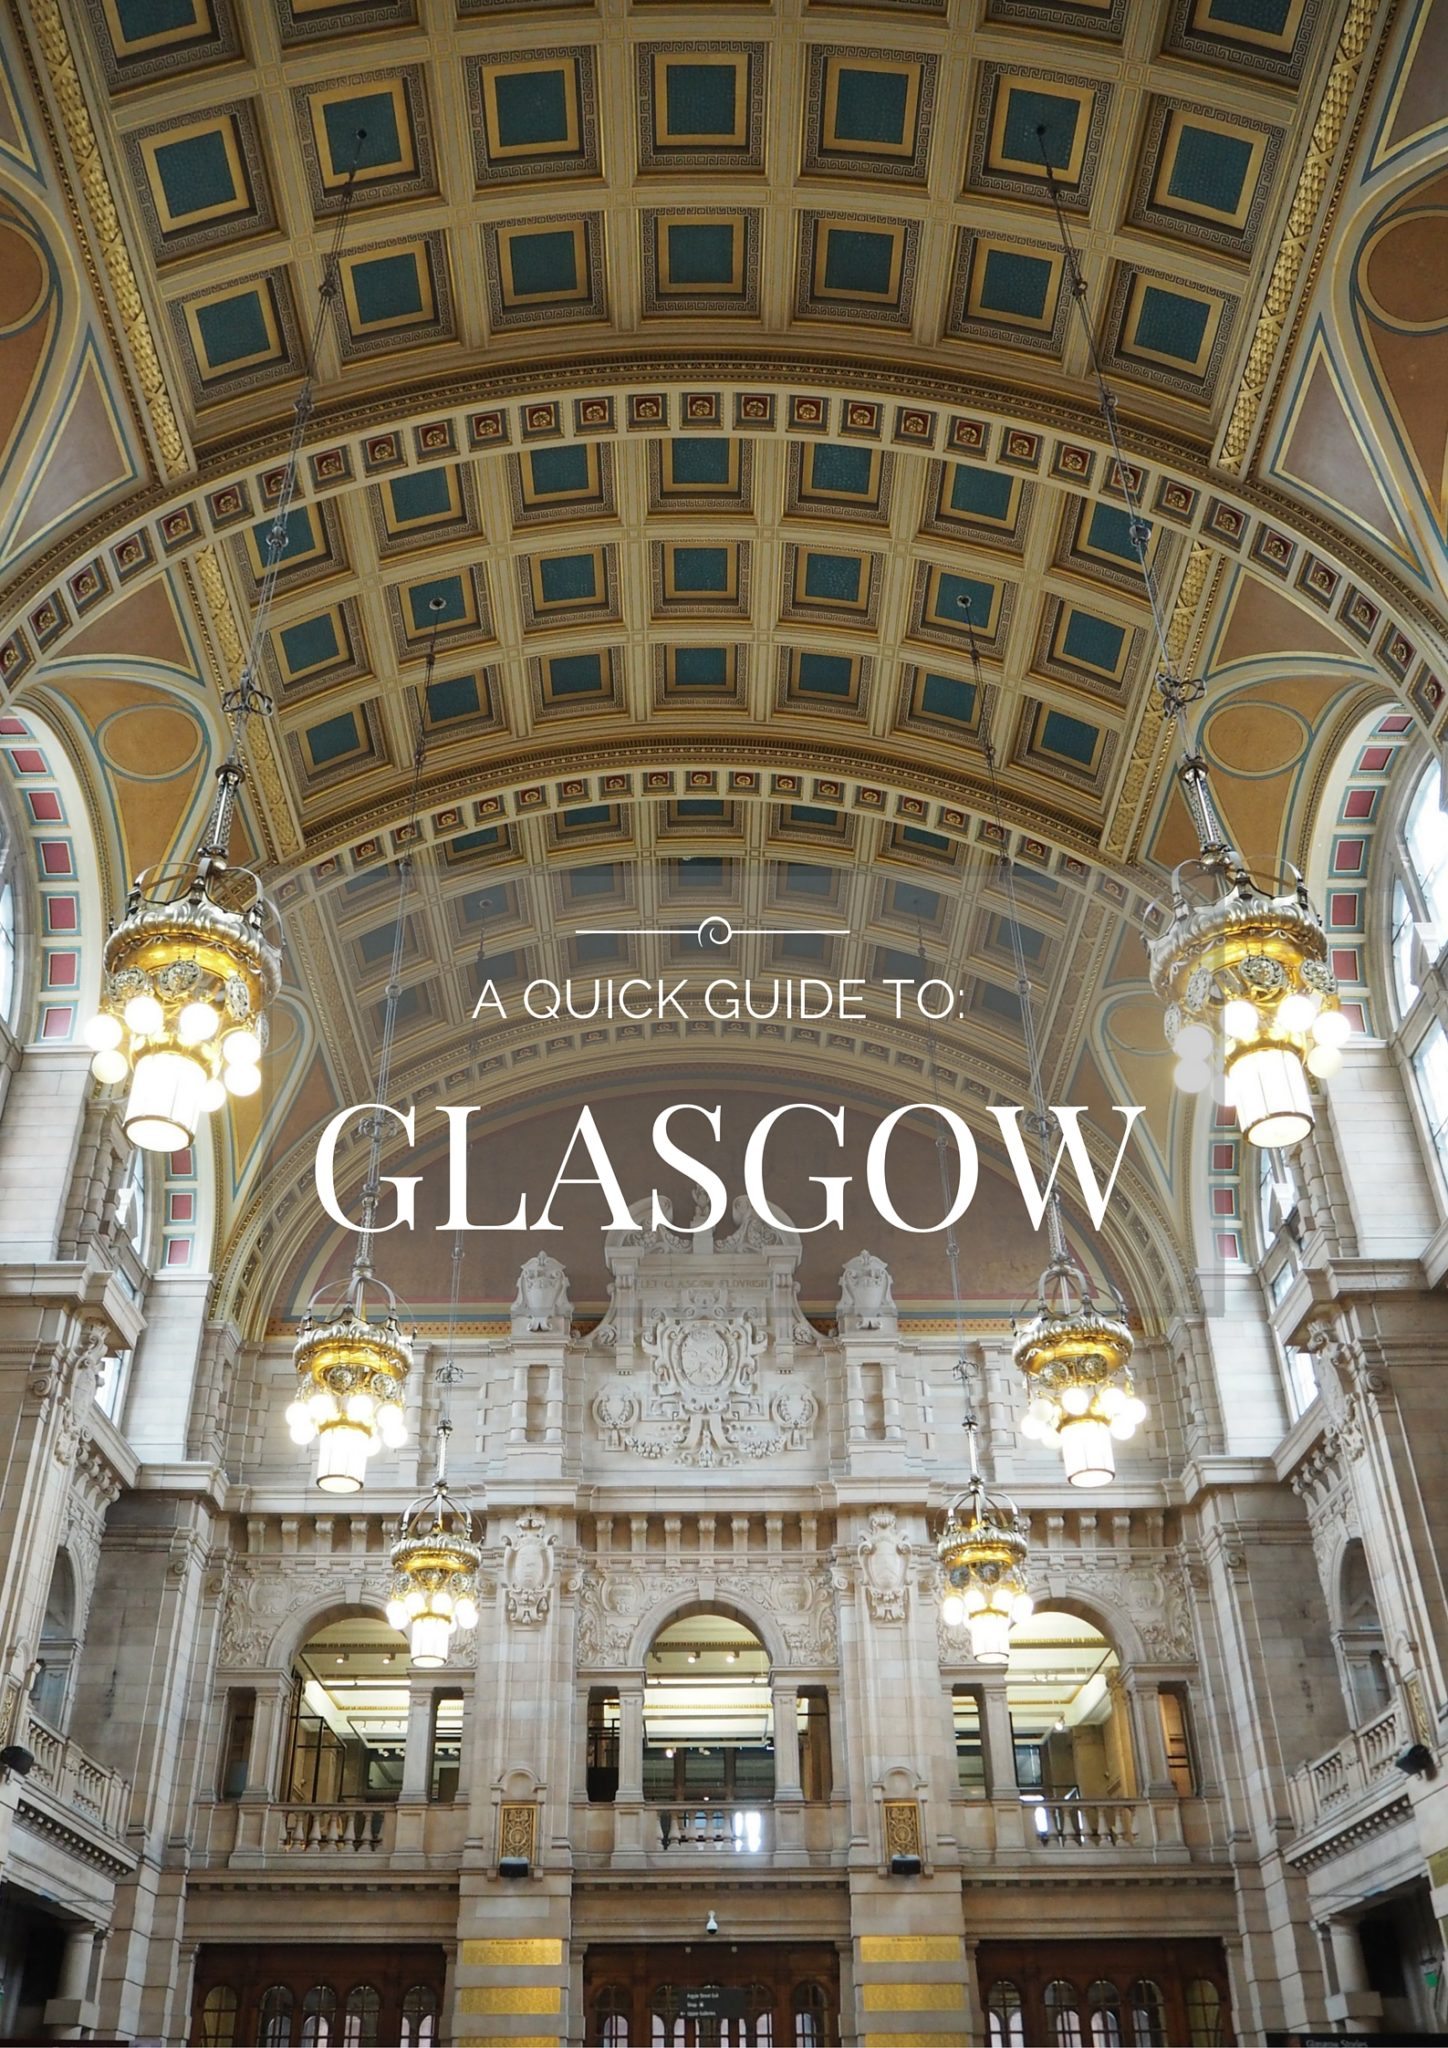 A Quick Guide to Glasgow